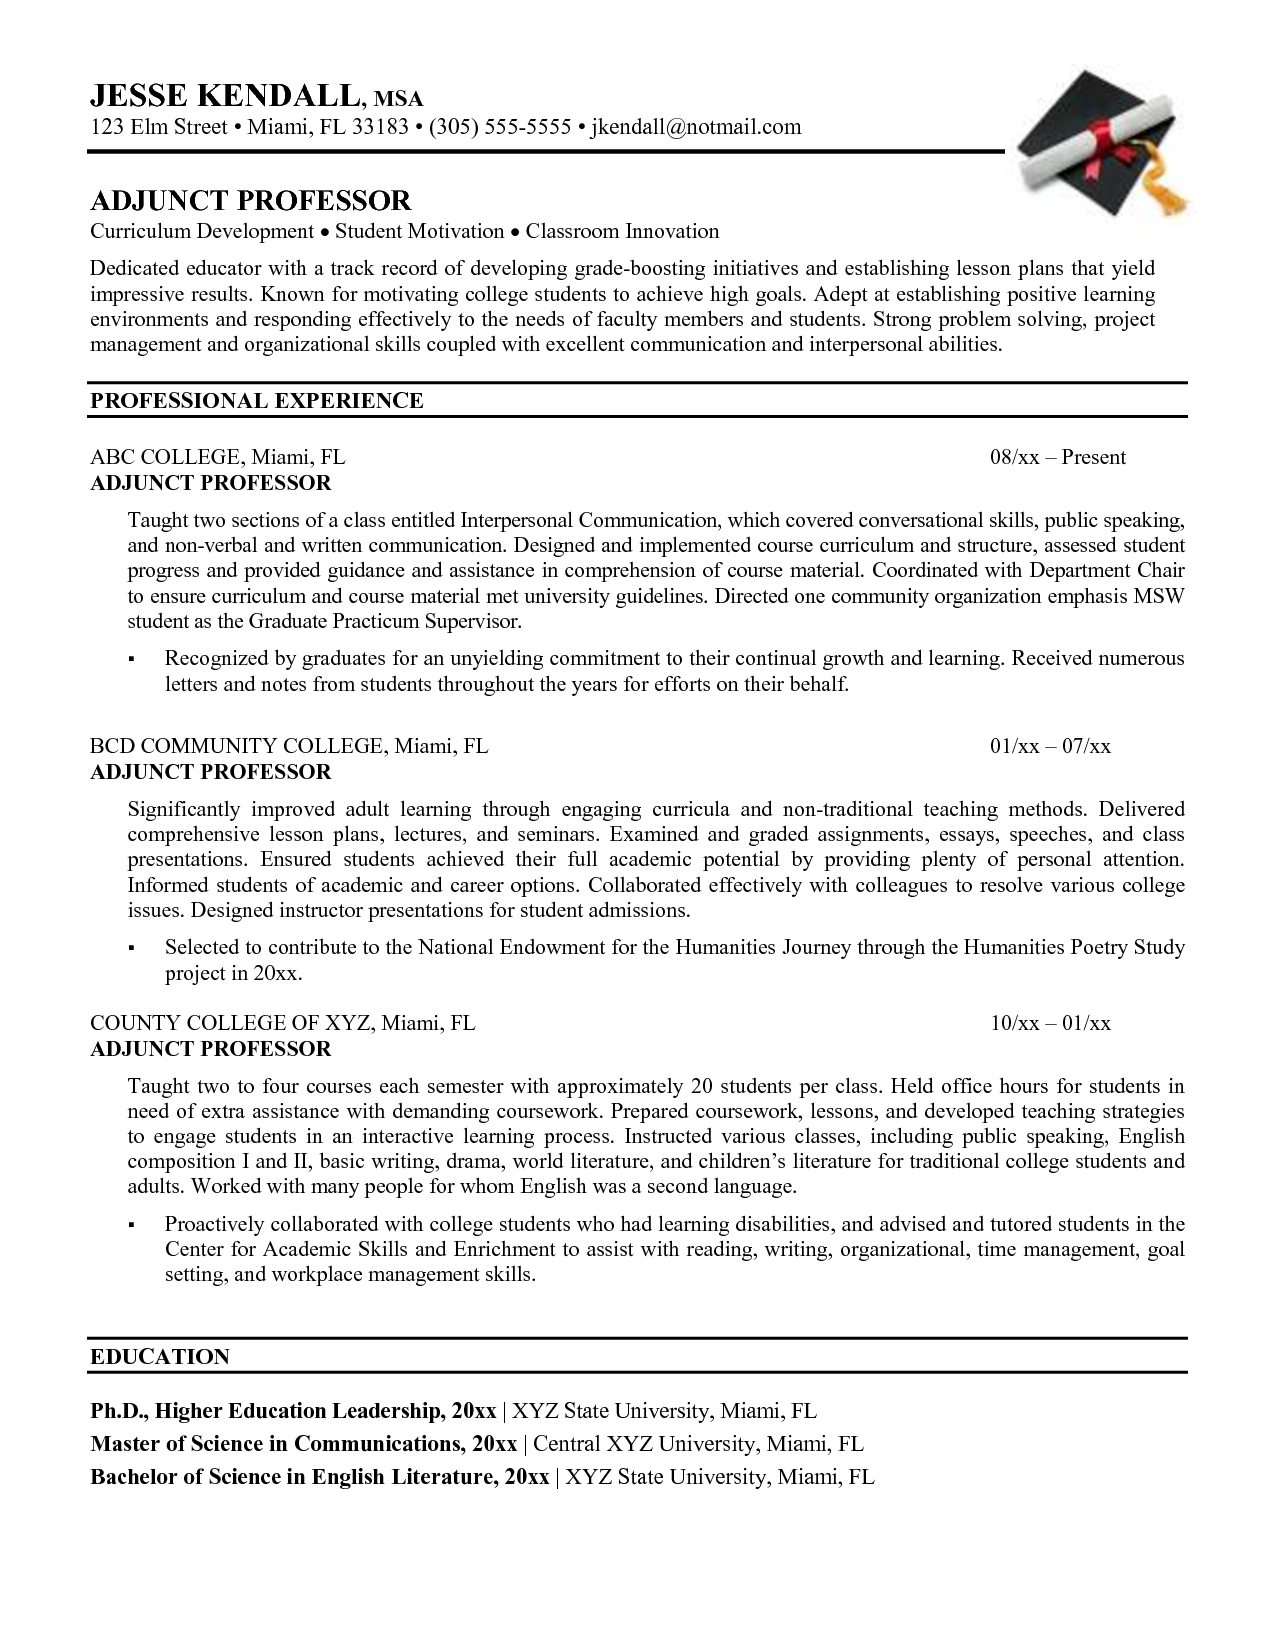 sample resume for experienced assistant professor in engineering college sample resume for faculty position engineering adjunct